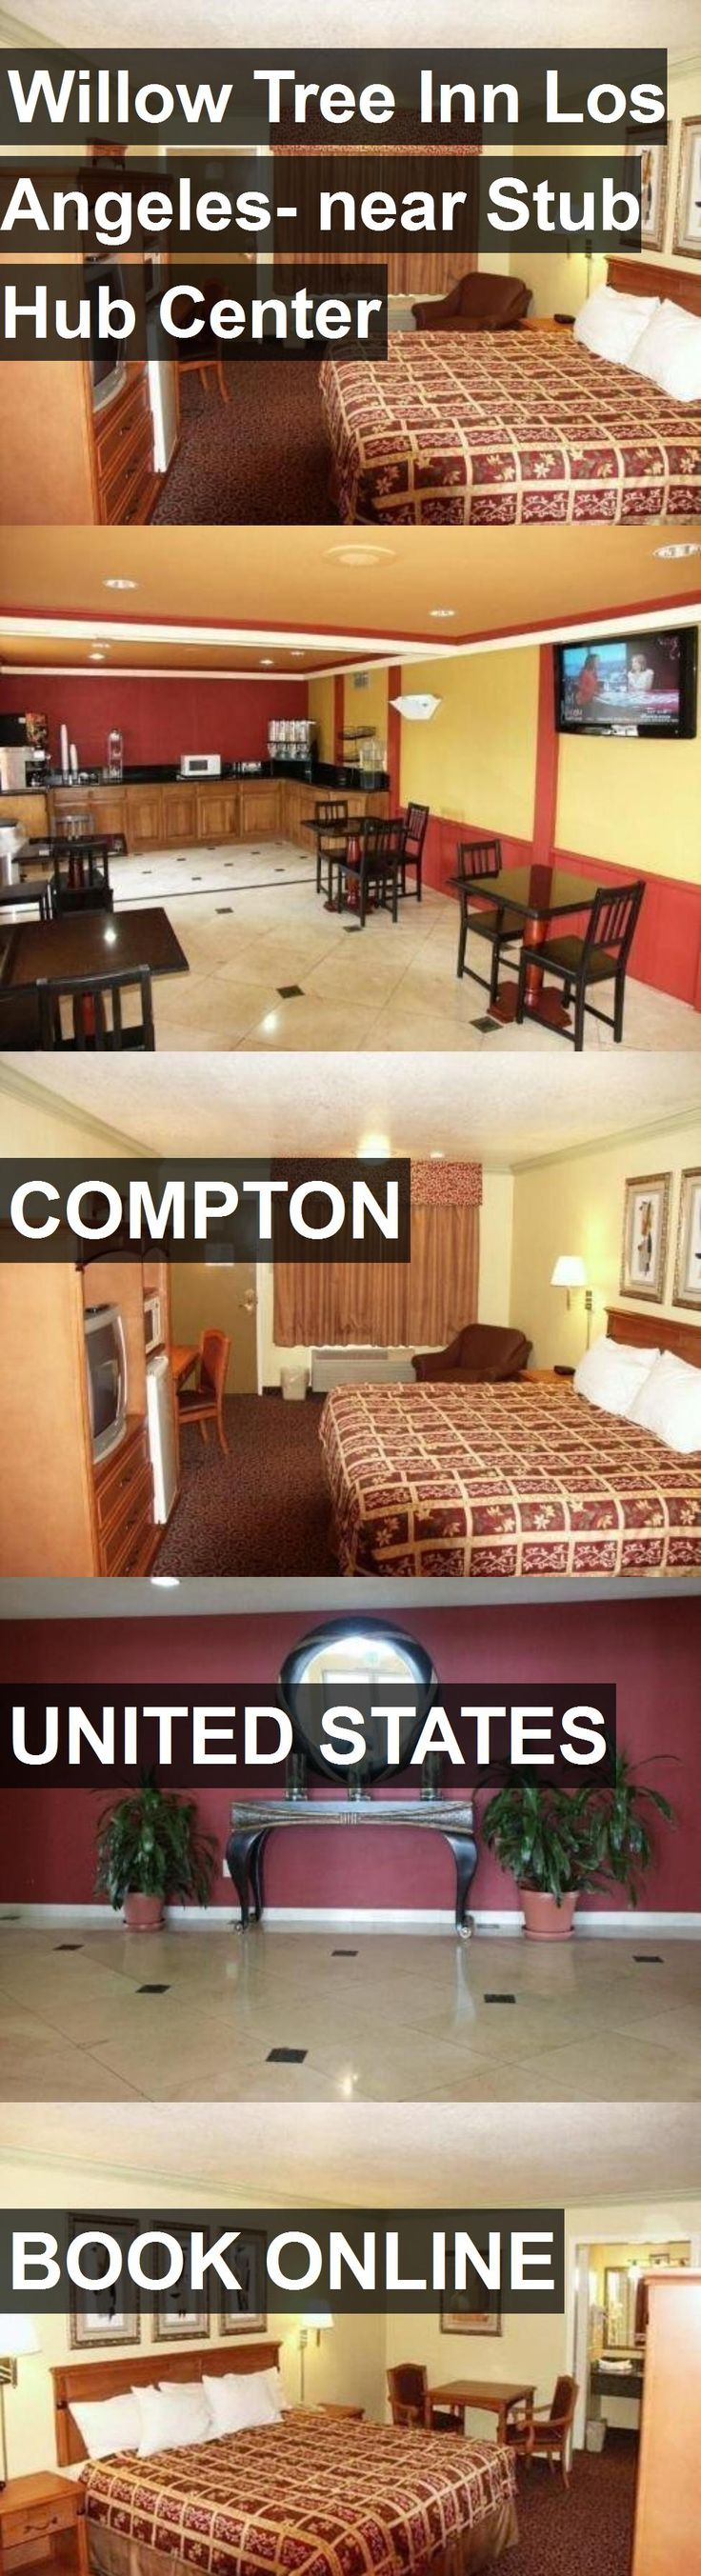 Hotel Willow Tree Inn Los Angeles- near Stub Hub Center in Compton, United States. For more information, photos, reviews and best prices please follow the link. #UnitedStates #Compton #travel #vacation #hotel